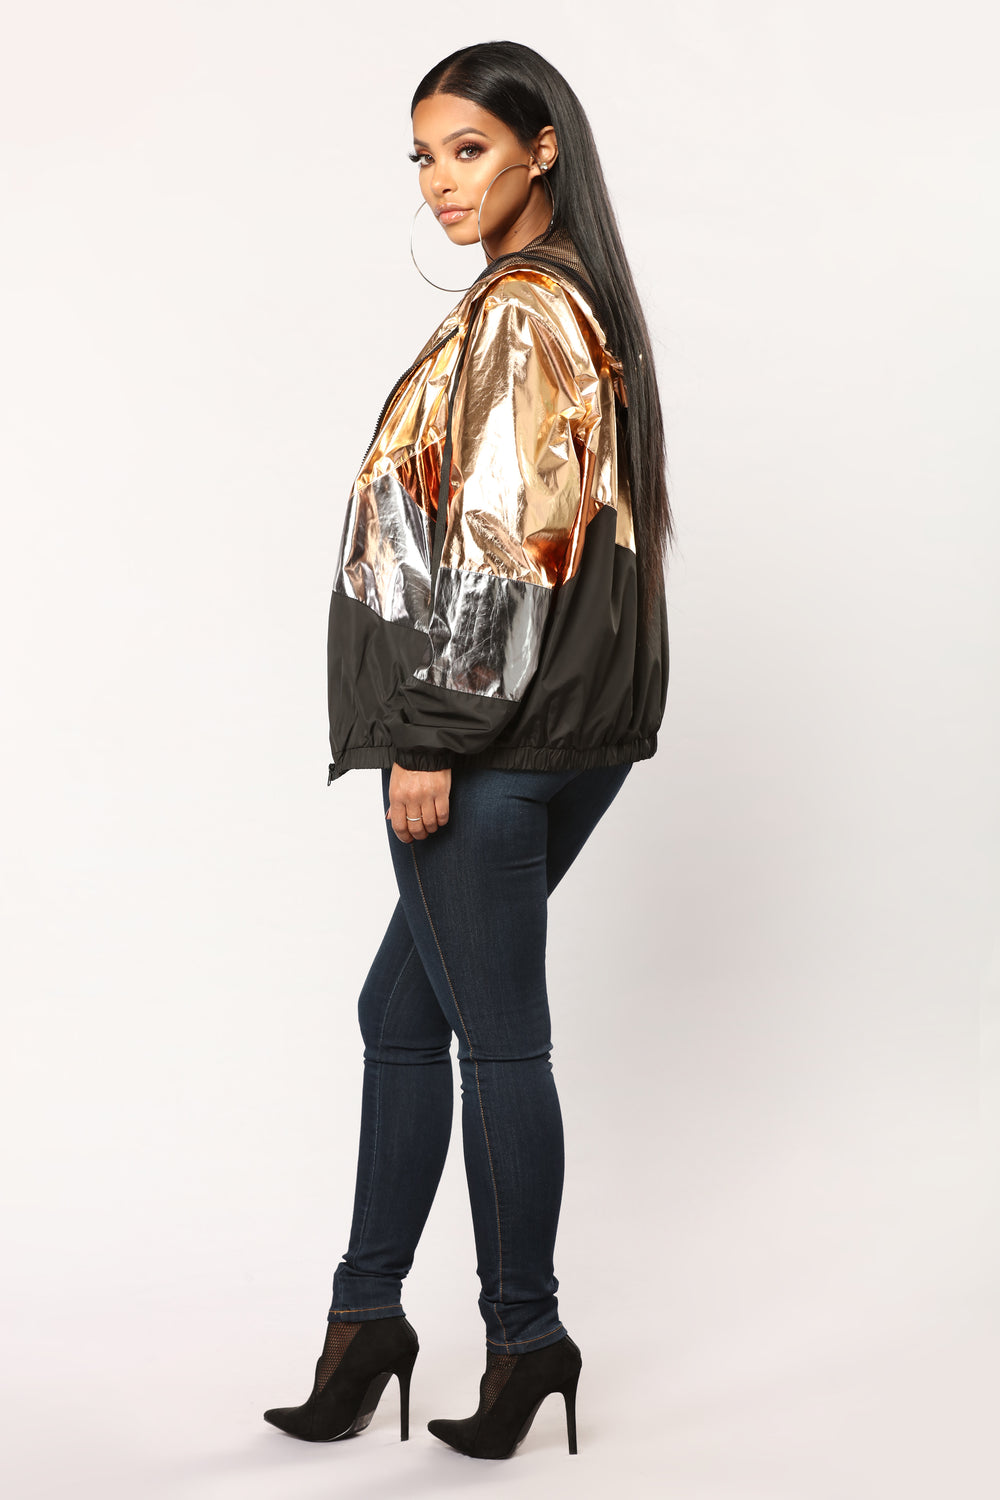 Swish Metallic Jacket - Metallic